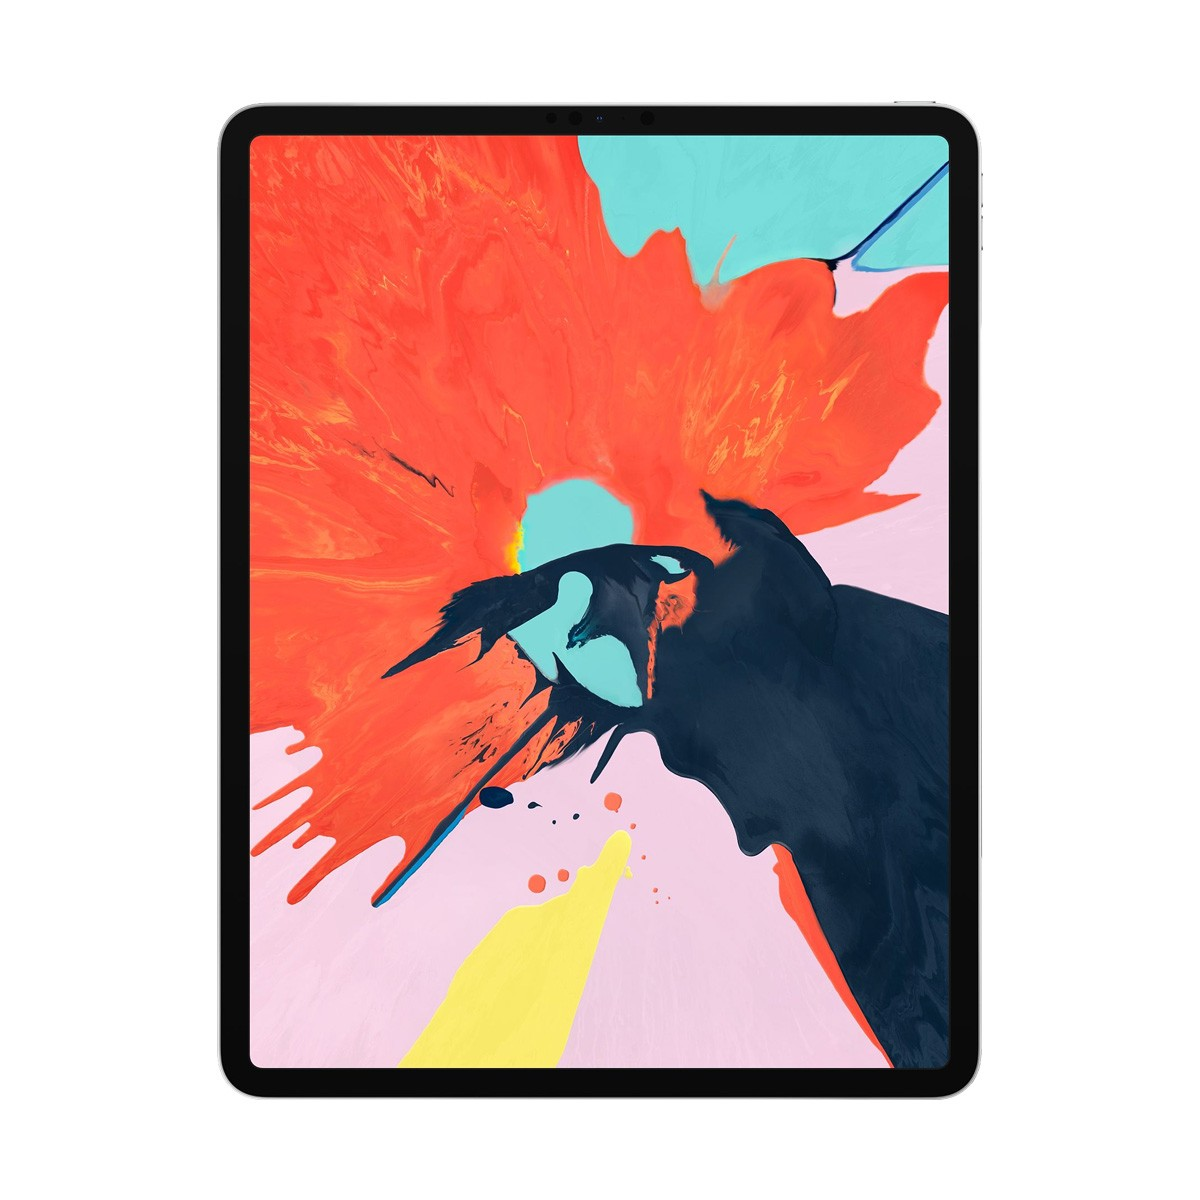 Apple iPad Pro 11 price feature and reviews in bd